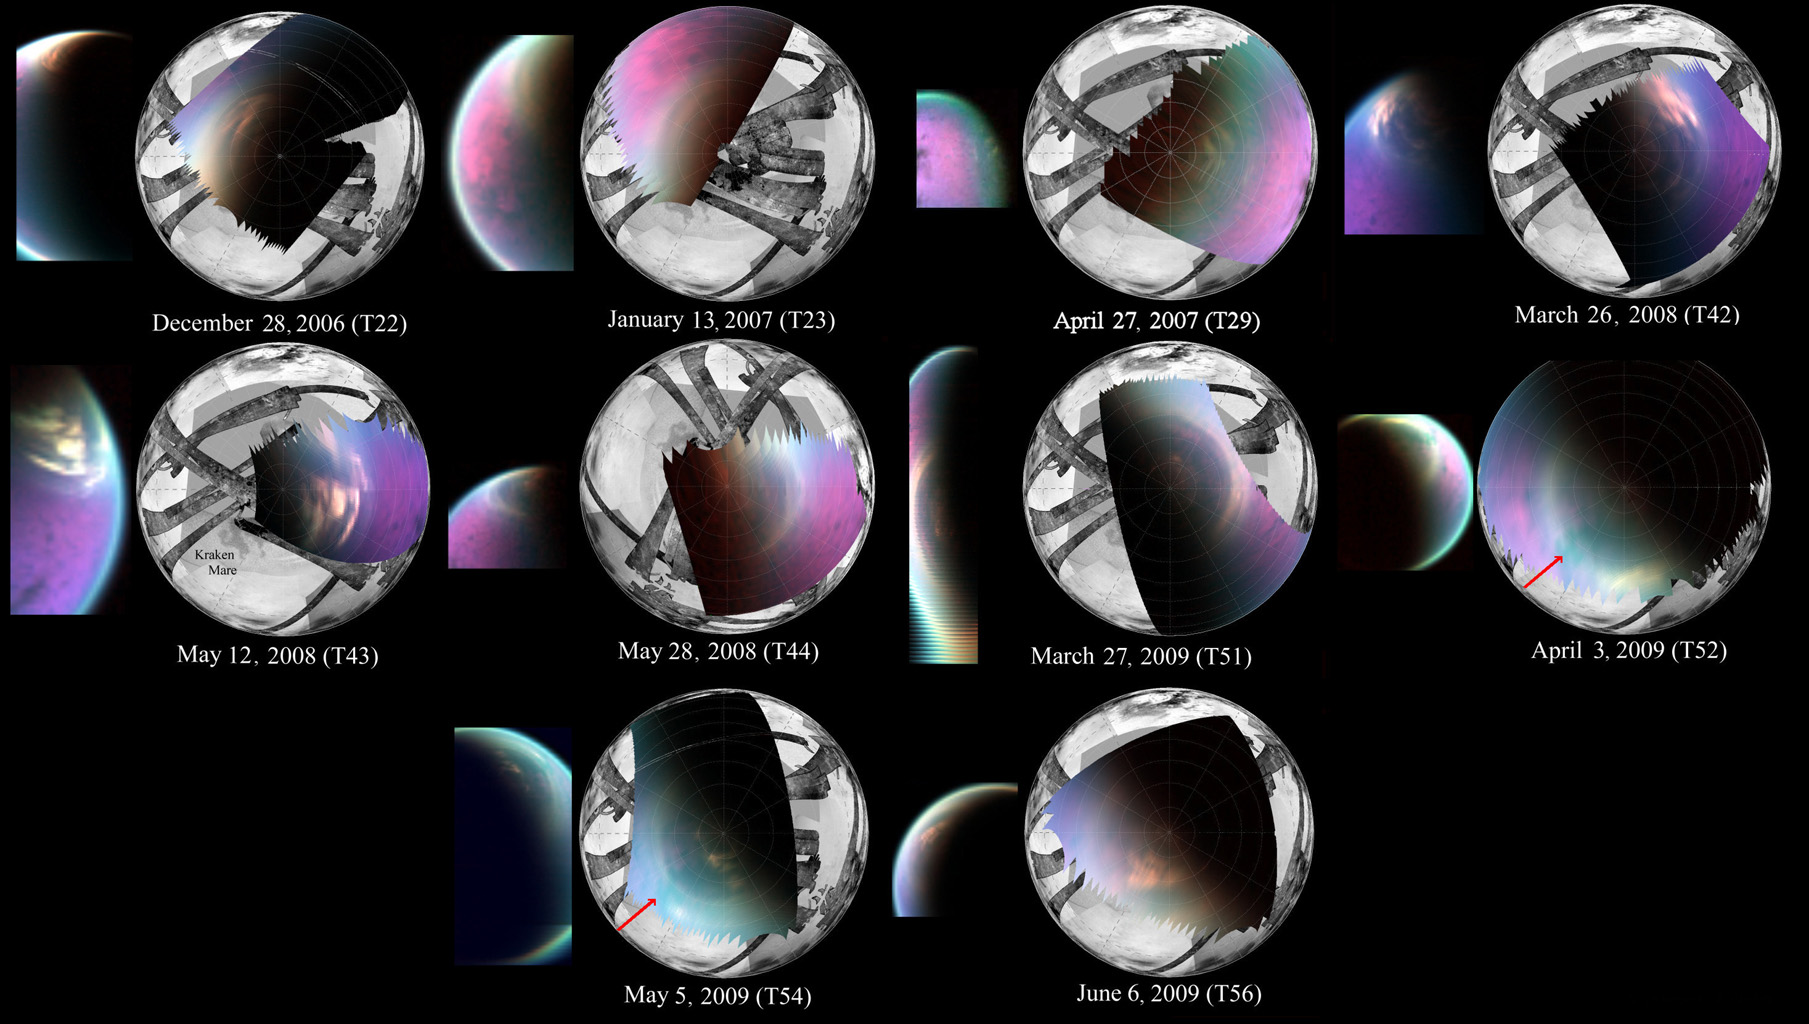 This series of images obtained by NASA's Cassini spacecraft shows several views of the north polar cloud covering Saturn's moon Titan.